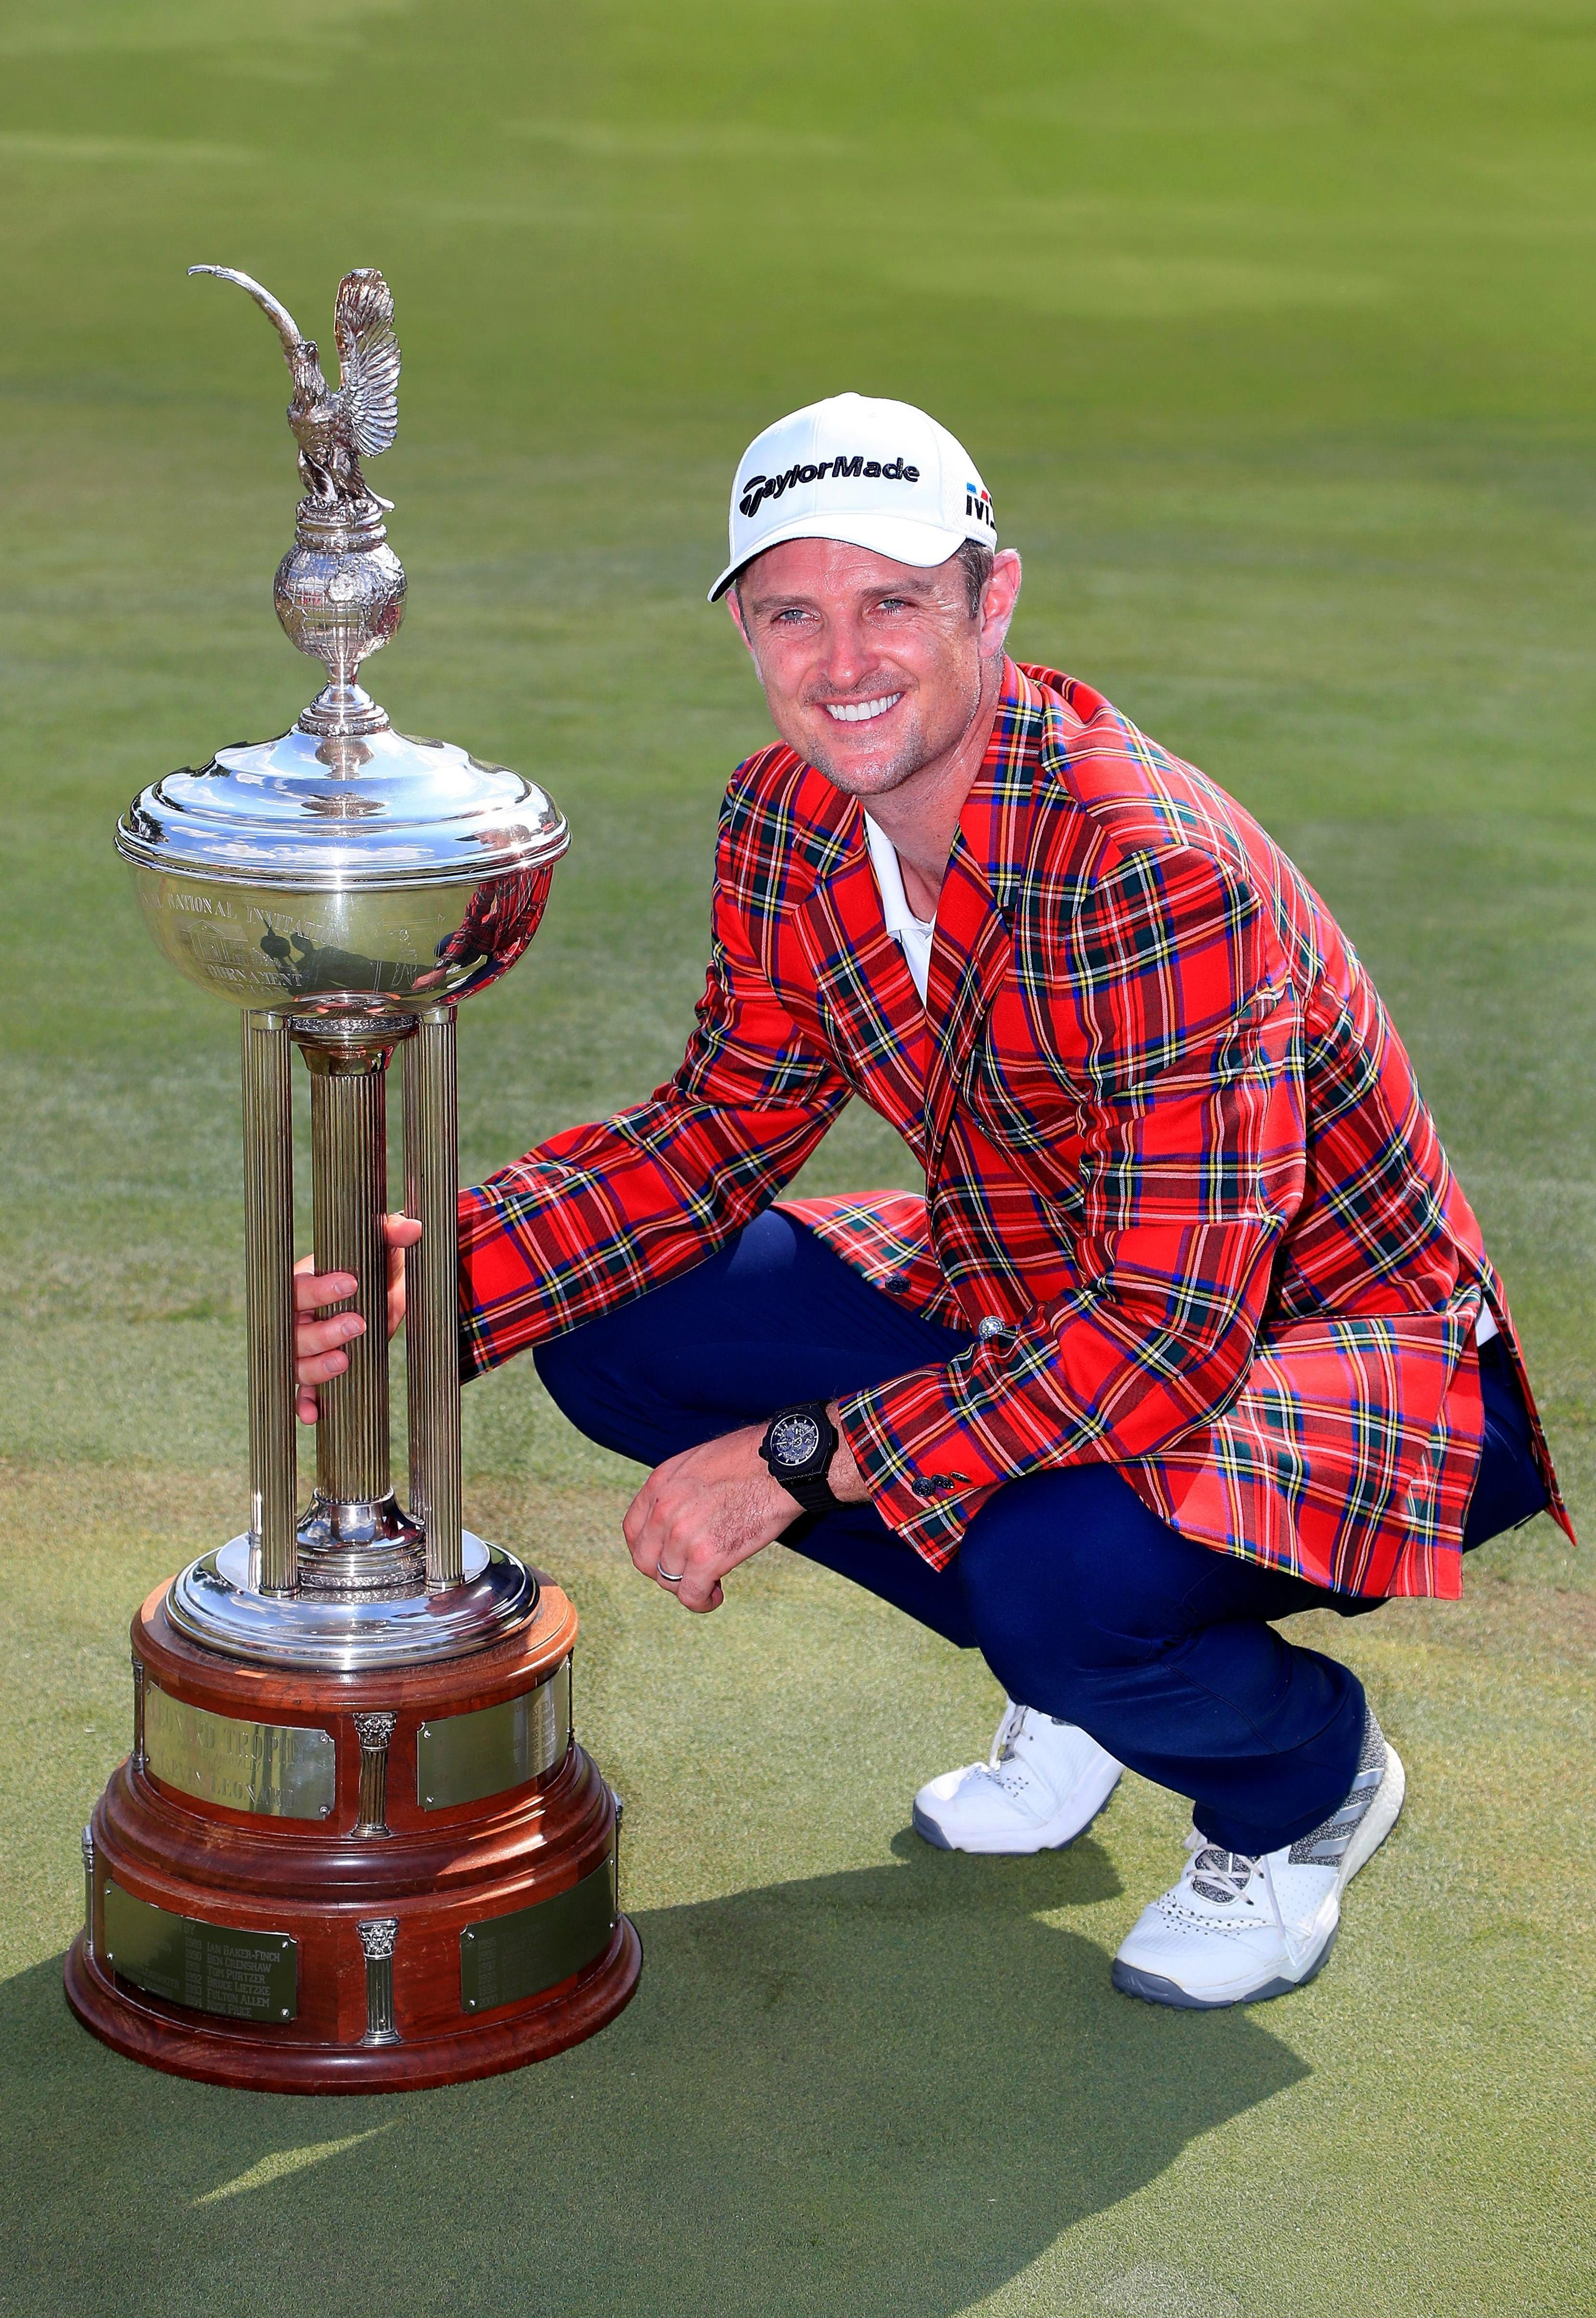 Justin Rose is hoping to land his tenth PGA Tour win at the US Open - after triumphing on the tricky Fort Worth Invitational course